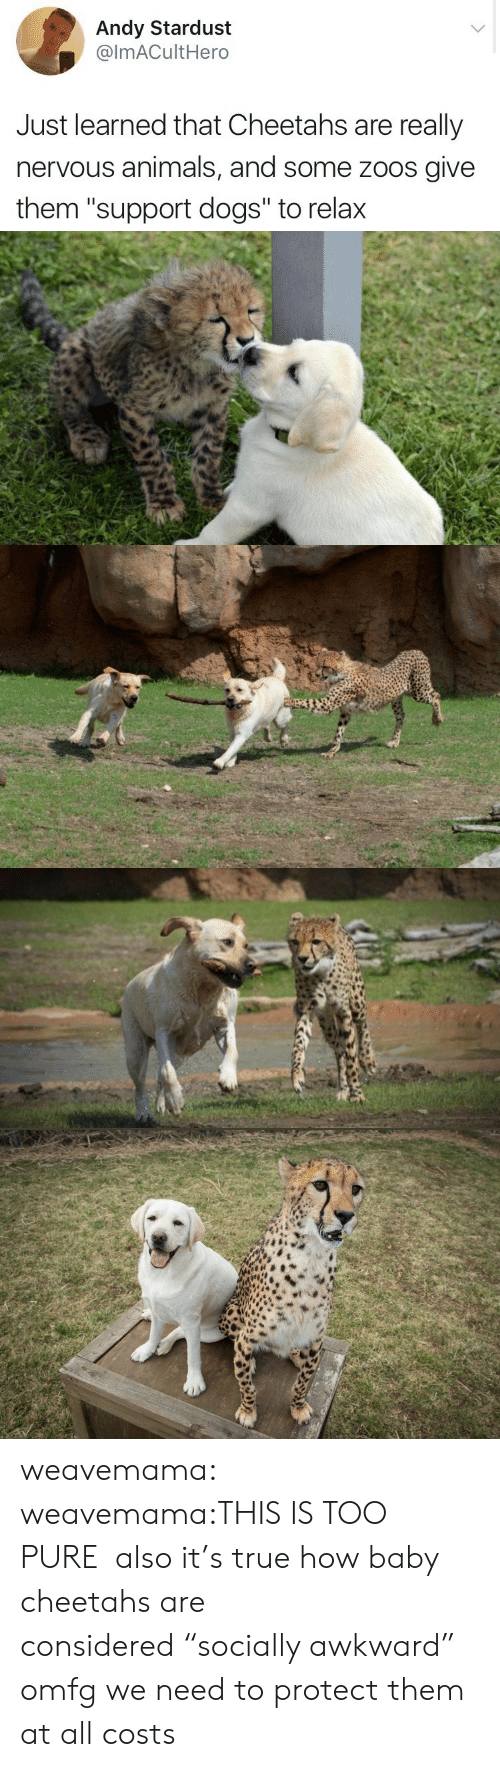 "Animals, Dogs, and True: Andy Stardust  @lmACultHero  Just learned that Cheetahs are really  nervous animals, and some zoos give  them ""support dogs"" to relax weavemama:  weavemama:THIS IS TOO PURE  also it's true how baby cheetahs are considered ""socially awkward"" omfg we need to protect them at all costs"